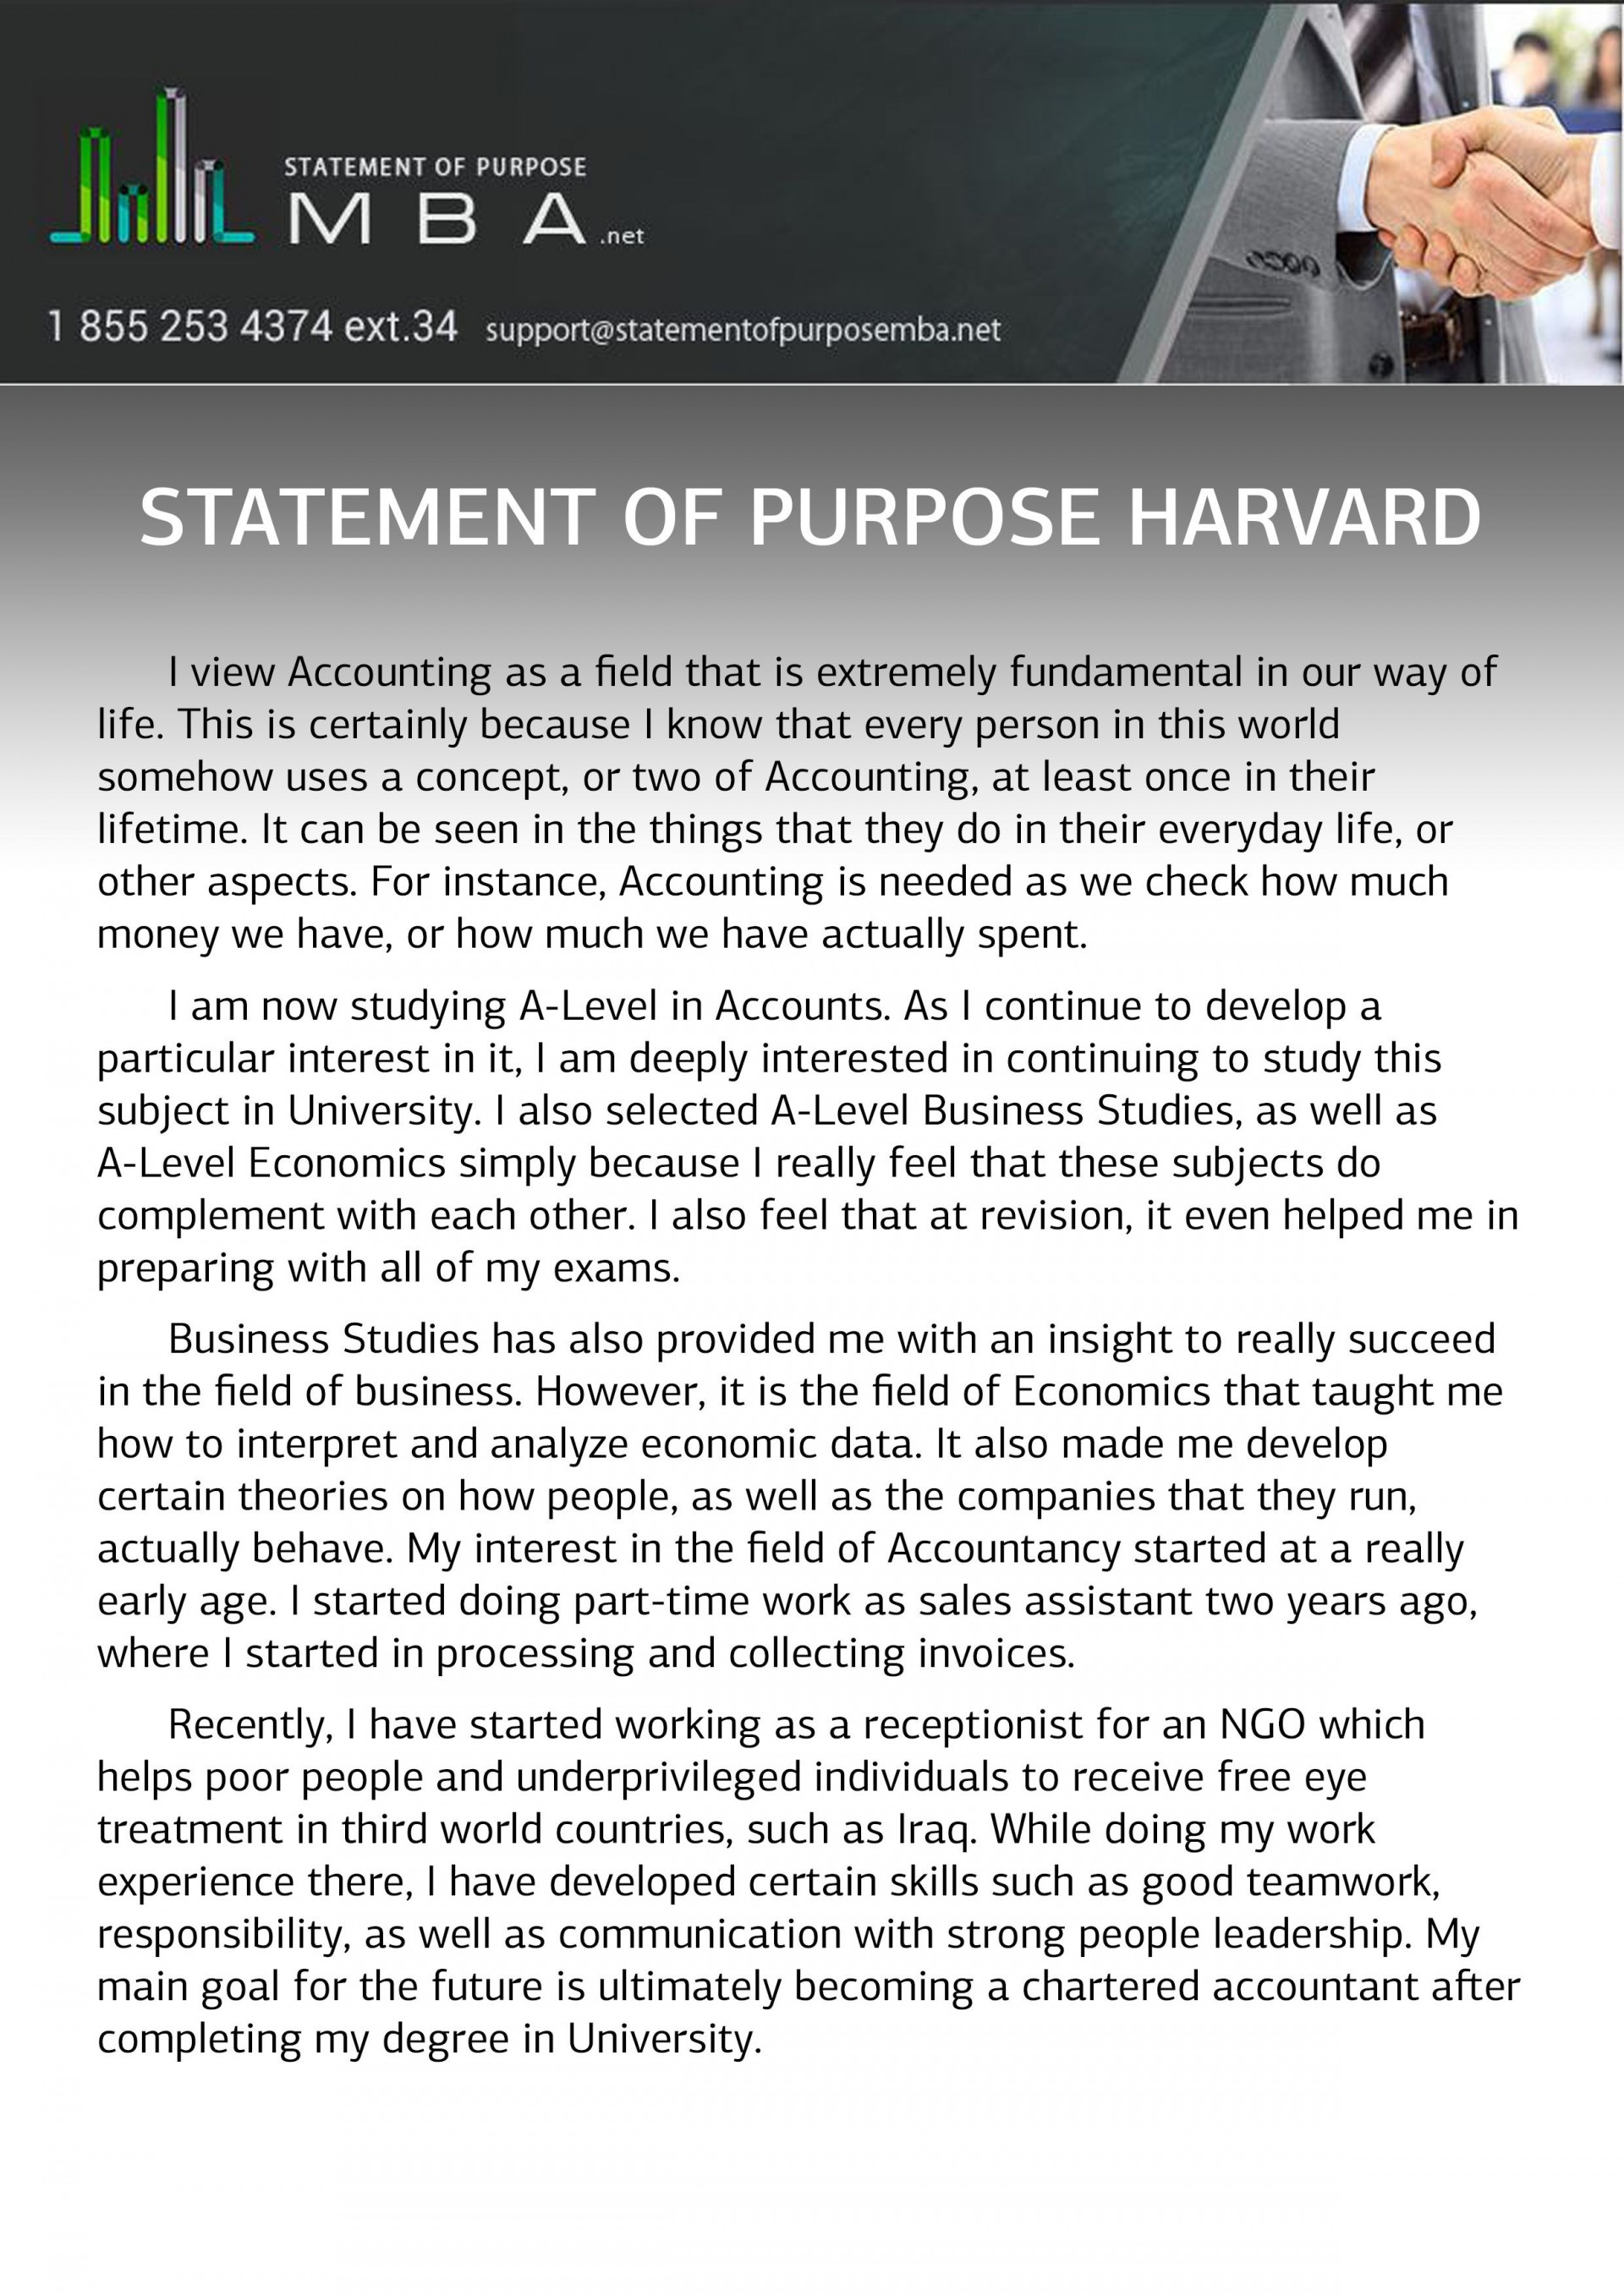 007 Harvard Essay Surprising Essays That Worked Application Prompt 2018 Prompts 1920